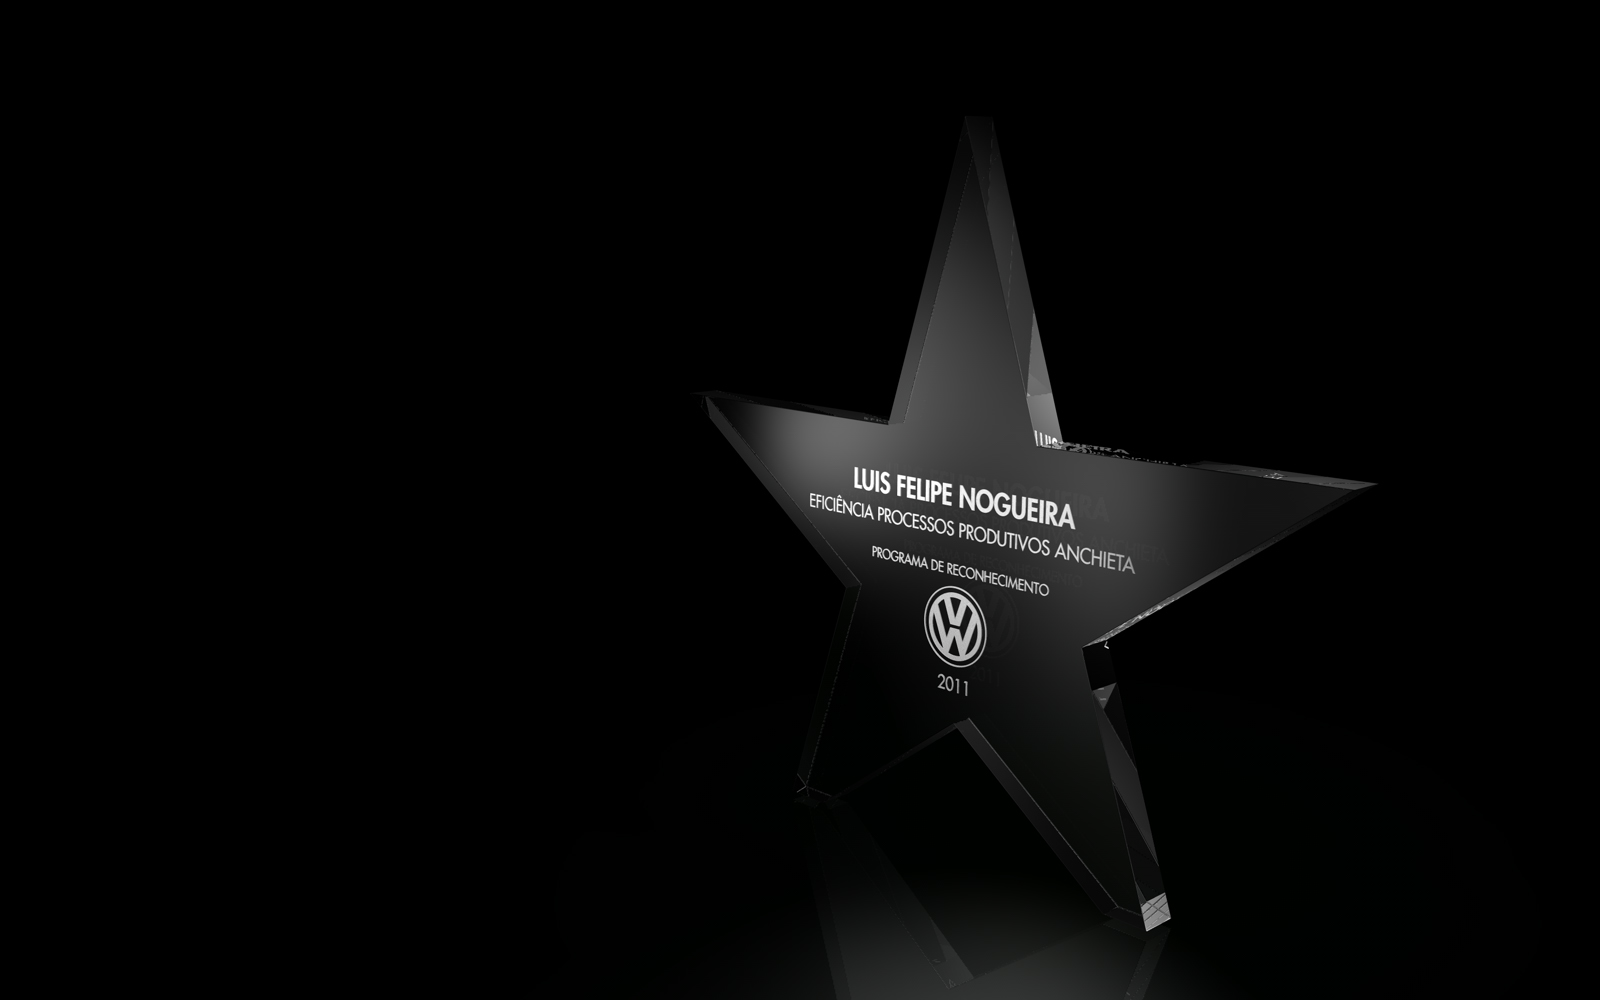 The trophy given was made of thick glass cutted in the shape of a star